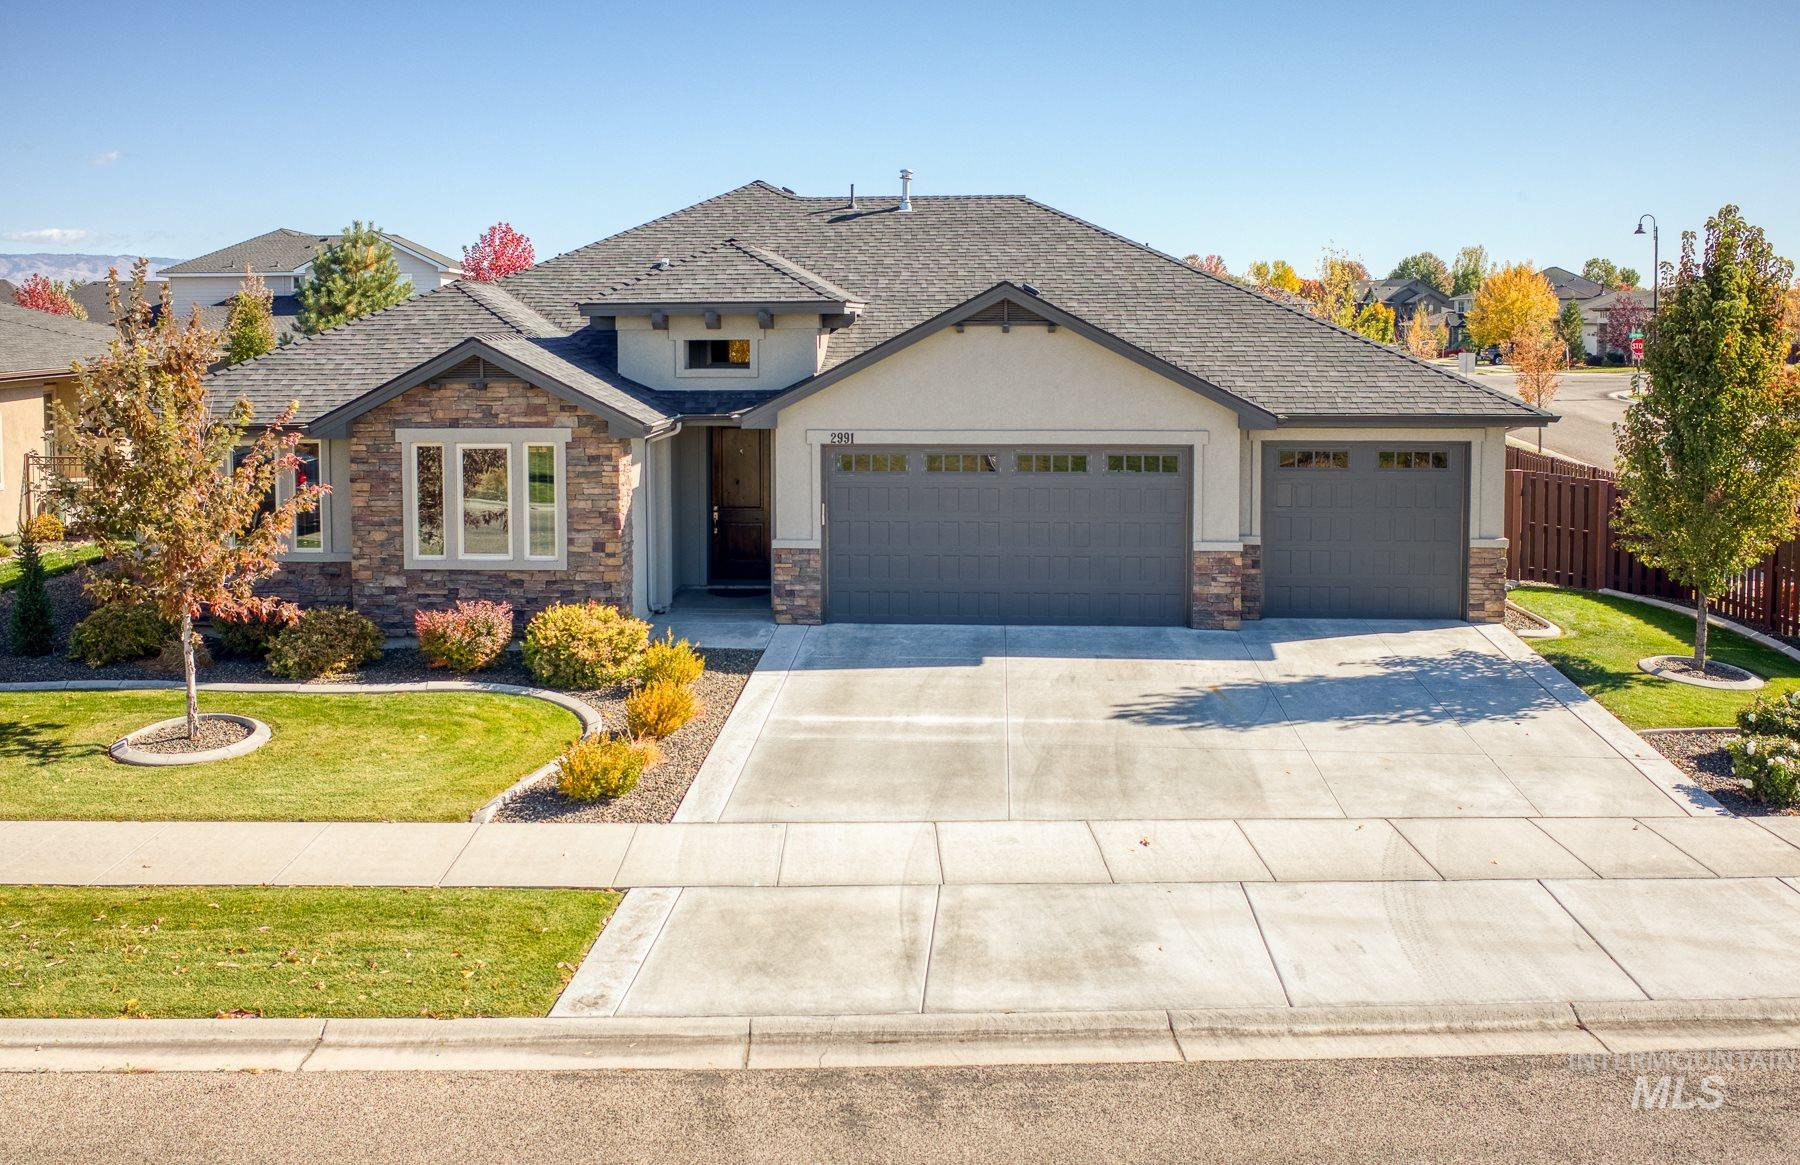 2991 S Fox Den Pl, Eagle, Idaho 83616, 3 Bedrooms, 2 Bathrooms, Residential For Sale, Price $698,900, 98784939